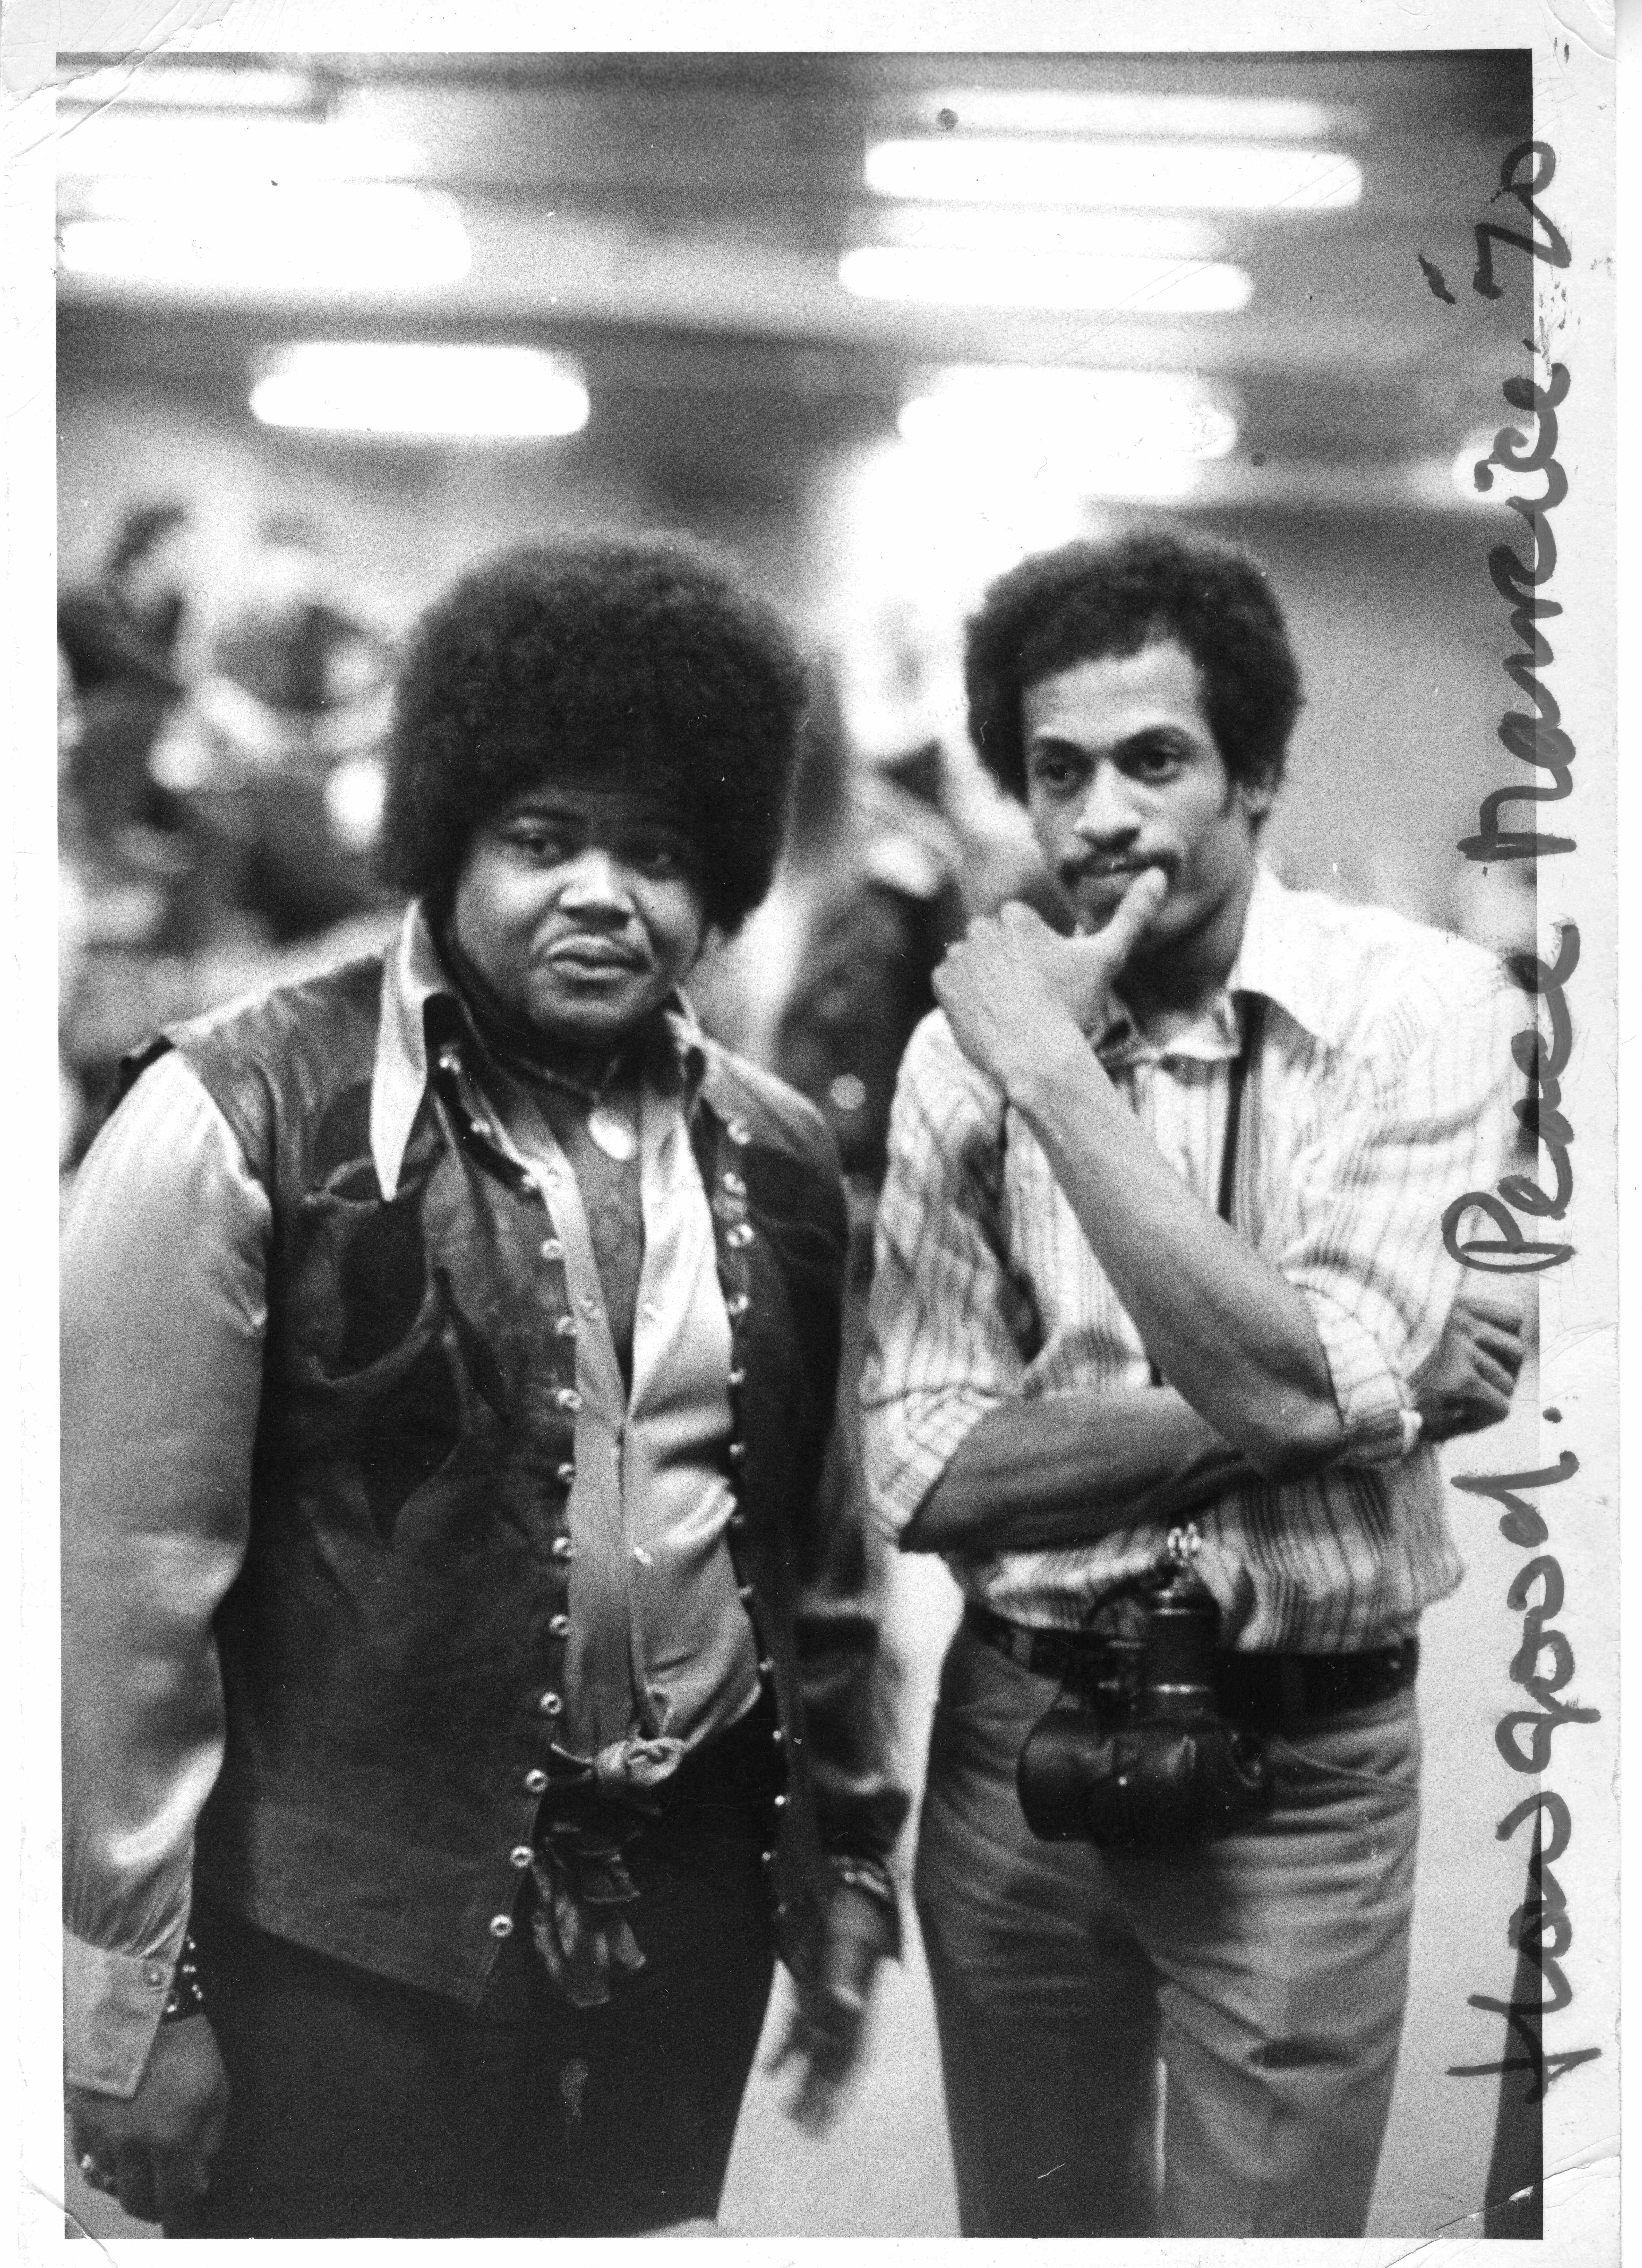 Buddy Miles Drummer With Drummer Buddy Miles